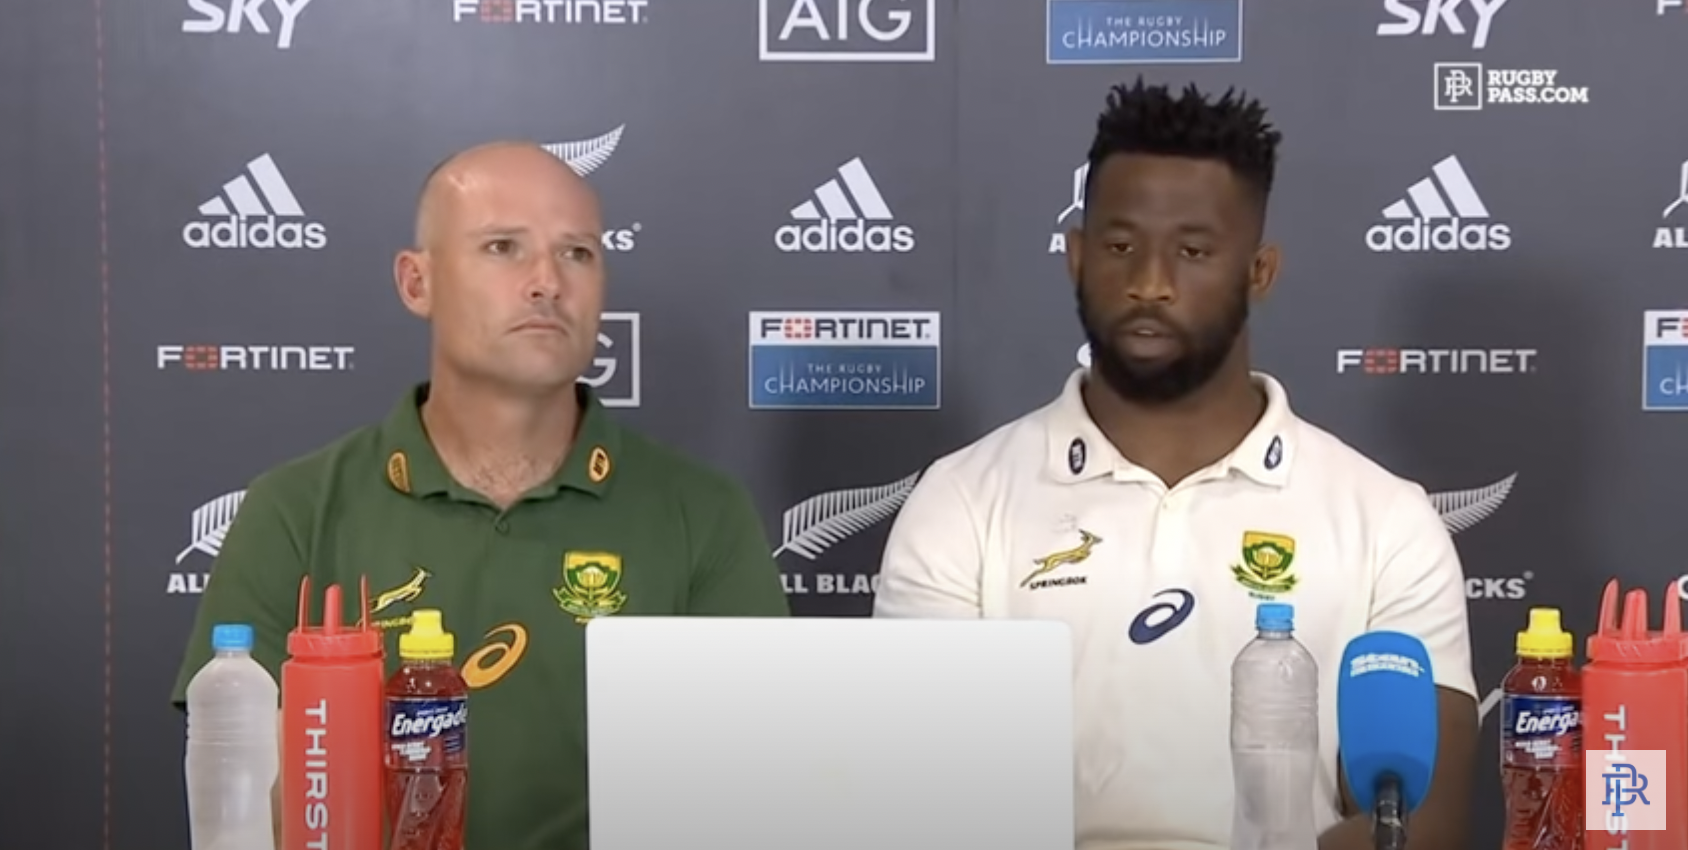 All Blacks post the image all Springboks are fearing